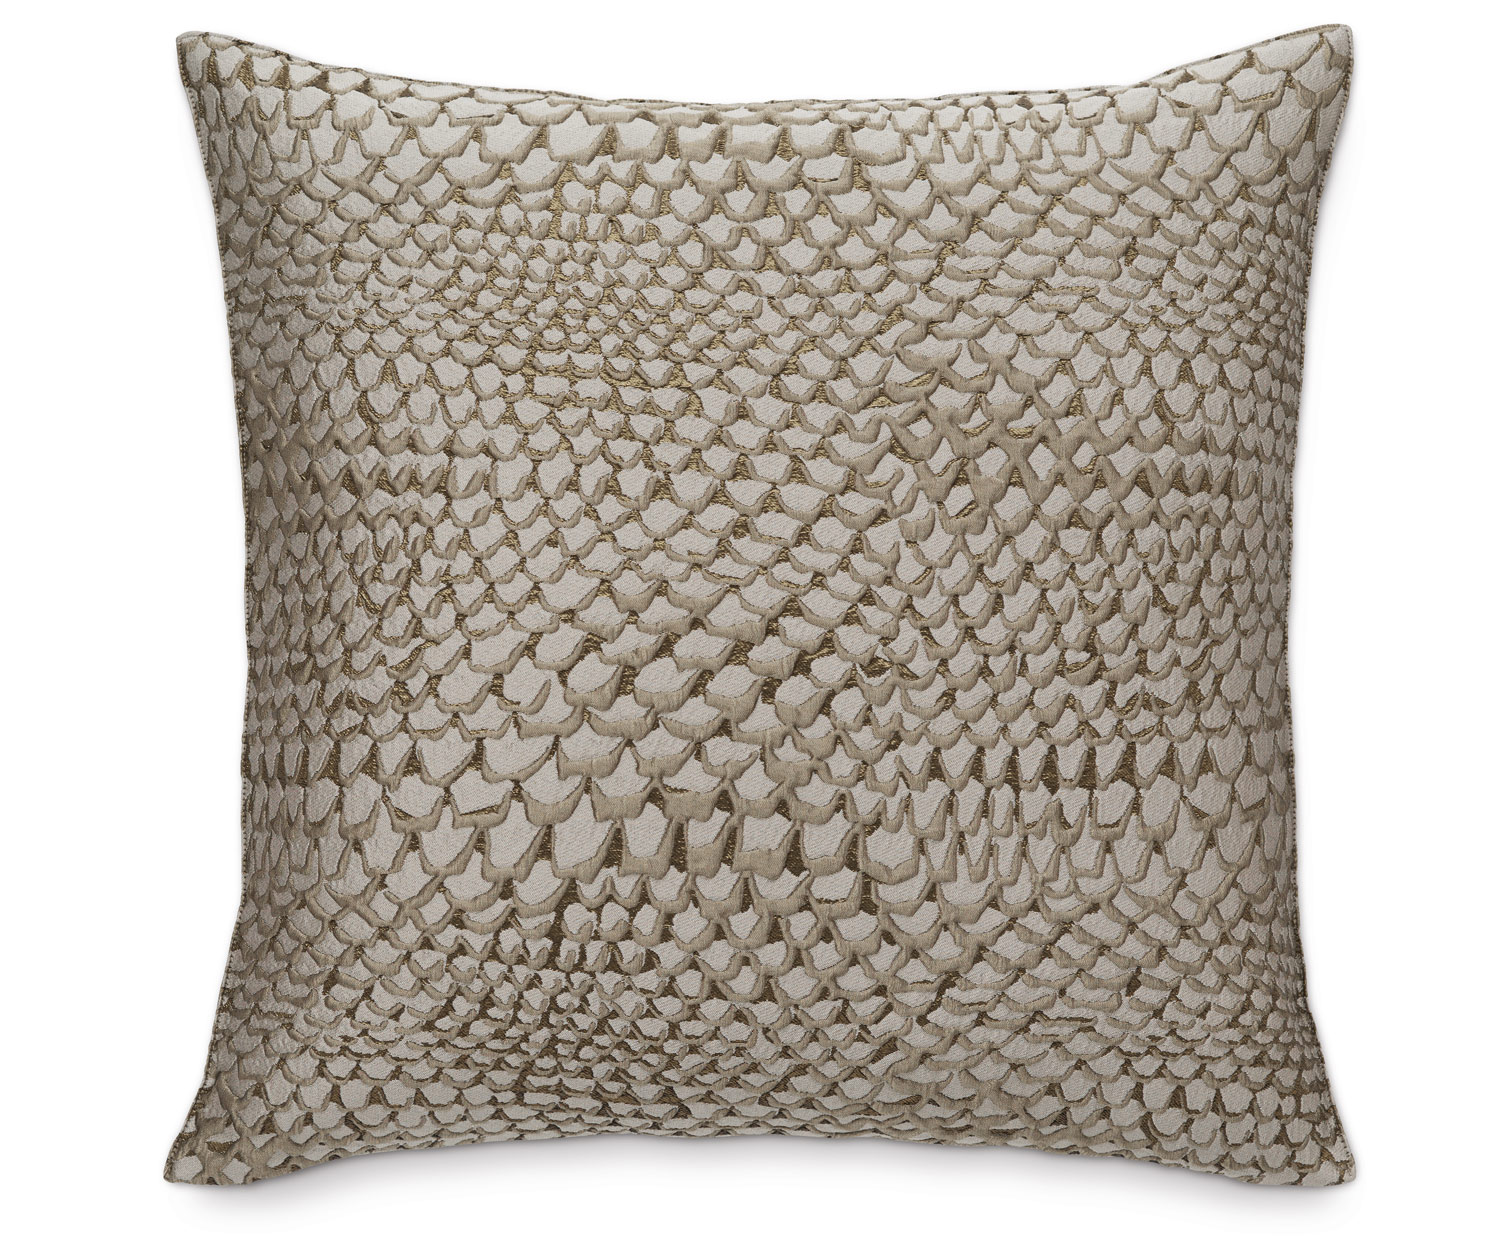 Luiz Arielle Cushion Cover In 4 Colours Buy Online Now Marc Leopold